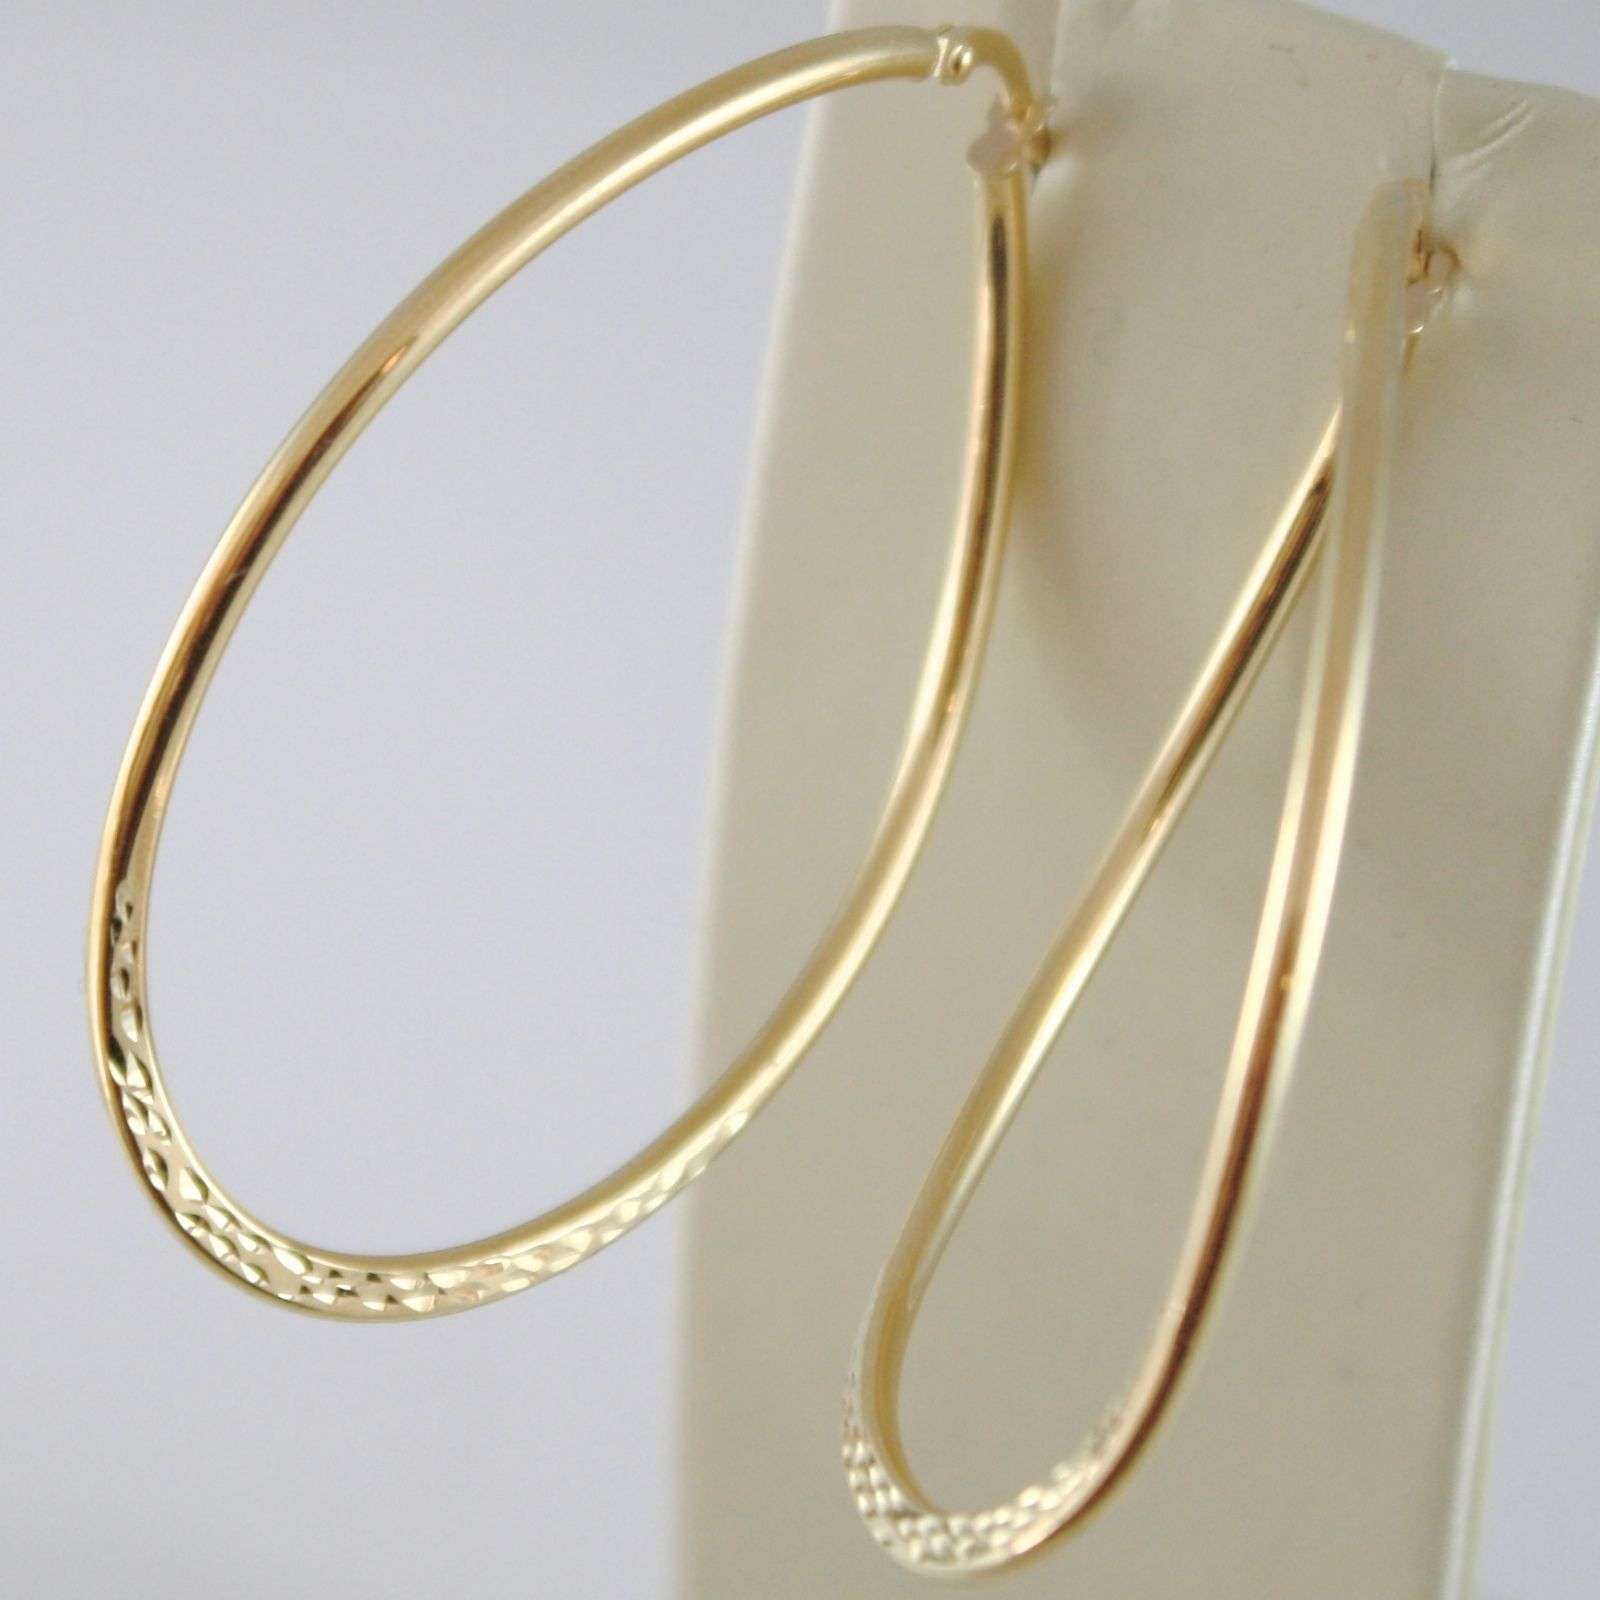 YELLOW GOLD EARRINGS 750 18K IN CIRCLE, OVALS, 5.5 CM, WAVY AND HAMMERED